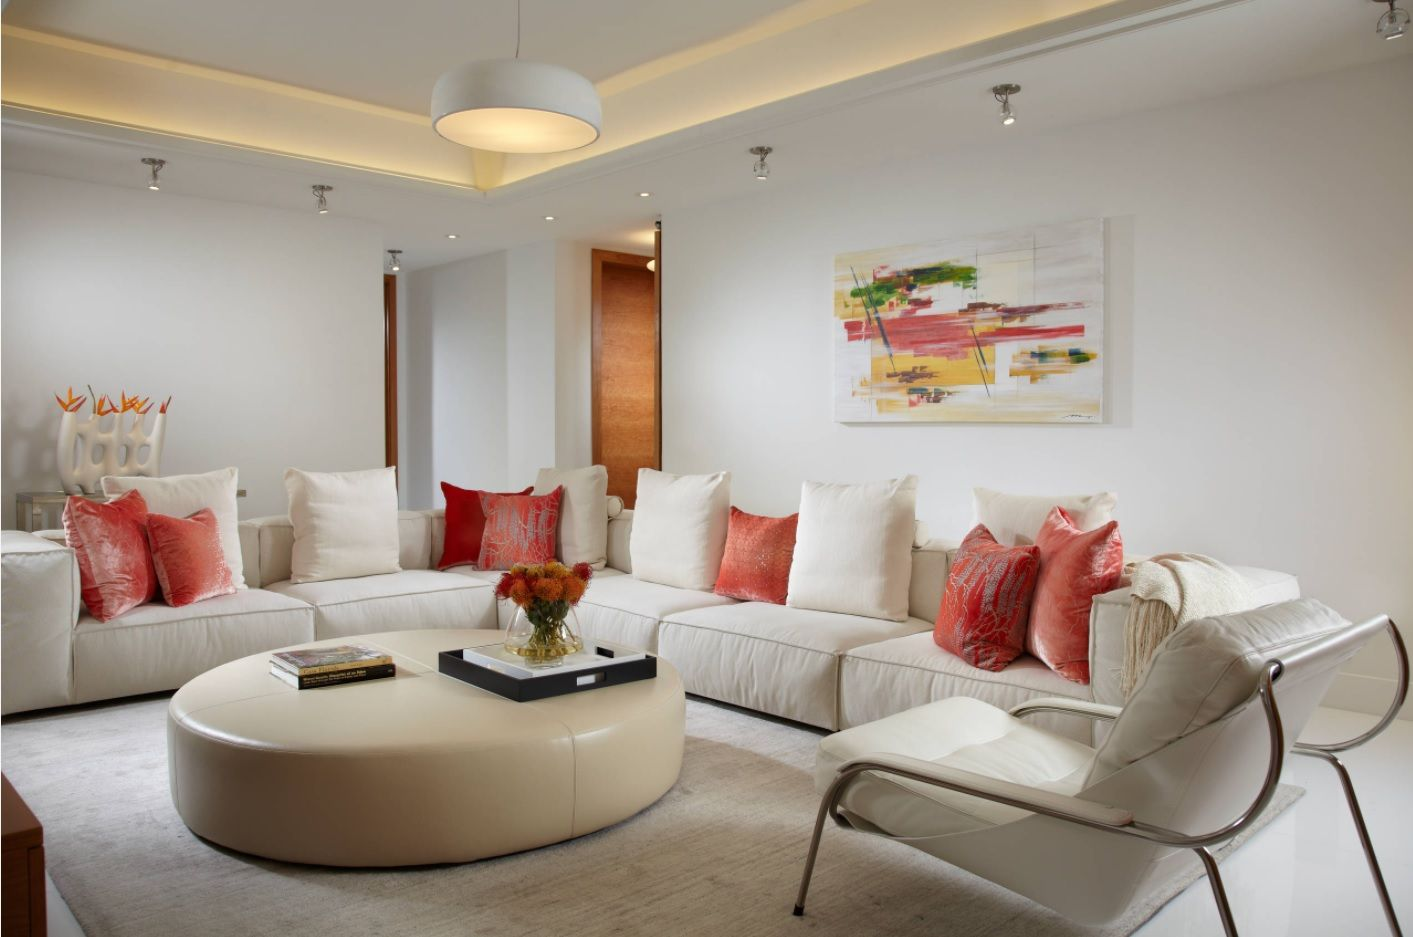 Zen Interior Design Concept for Your Home. Round forms in the overall stylistic